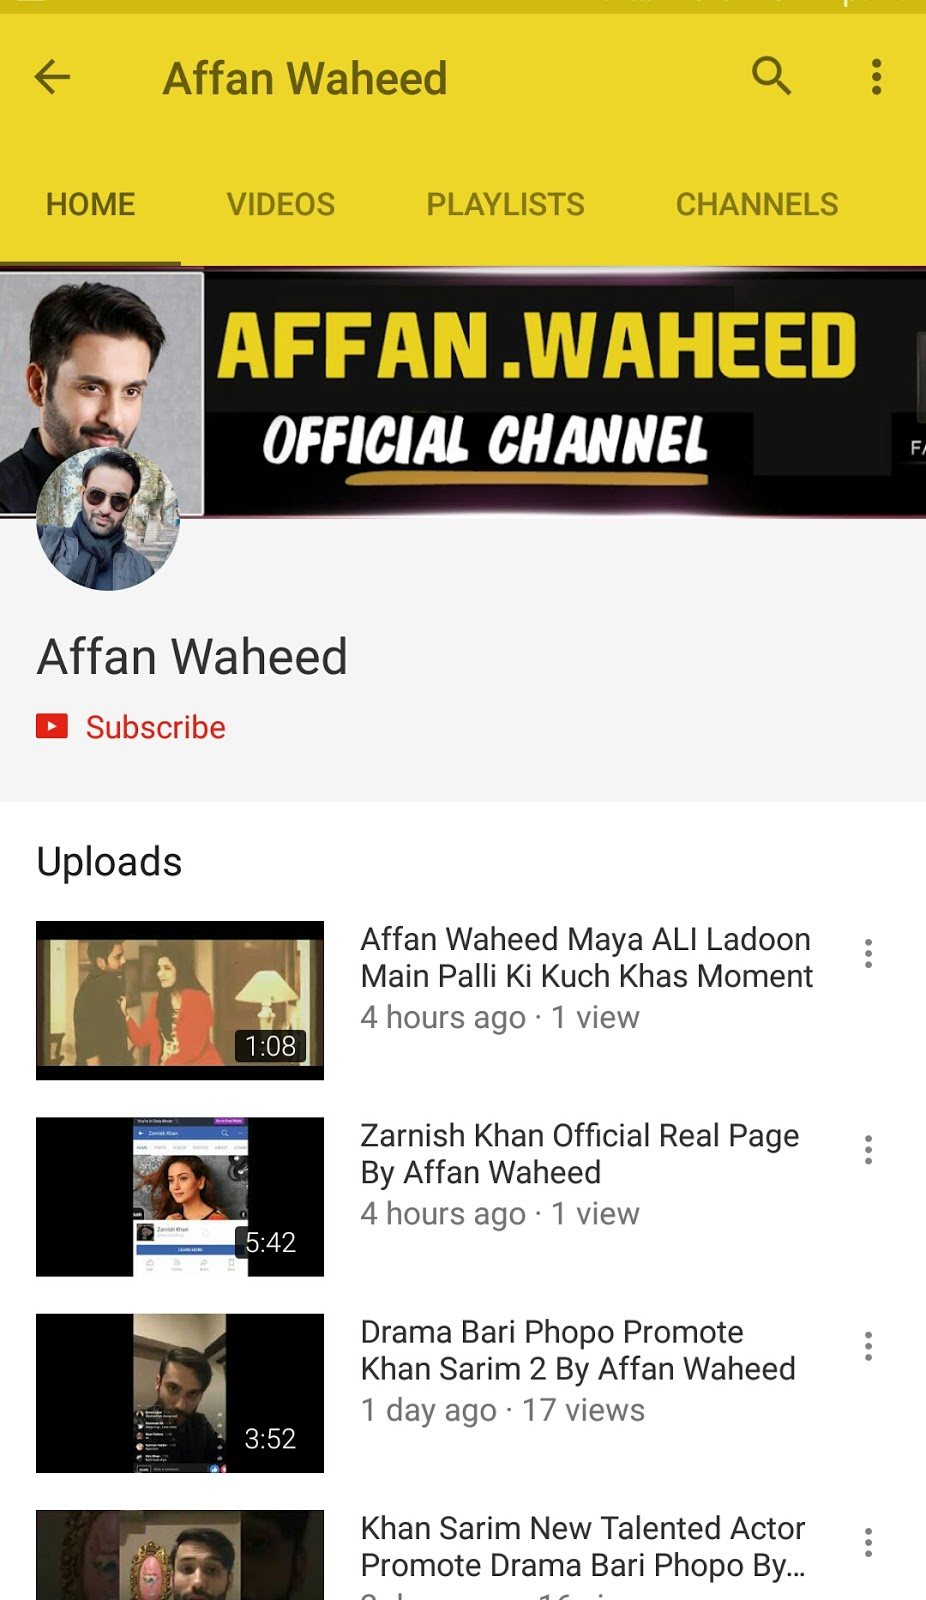 Affan Waheed Full Biography 2018 - Ww All Media News